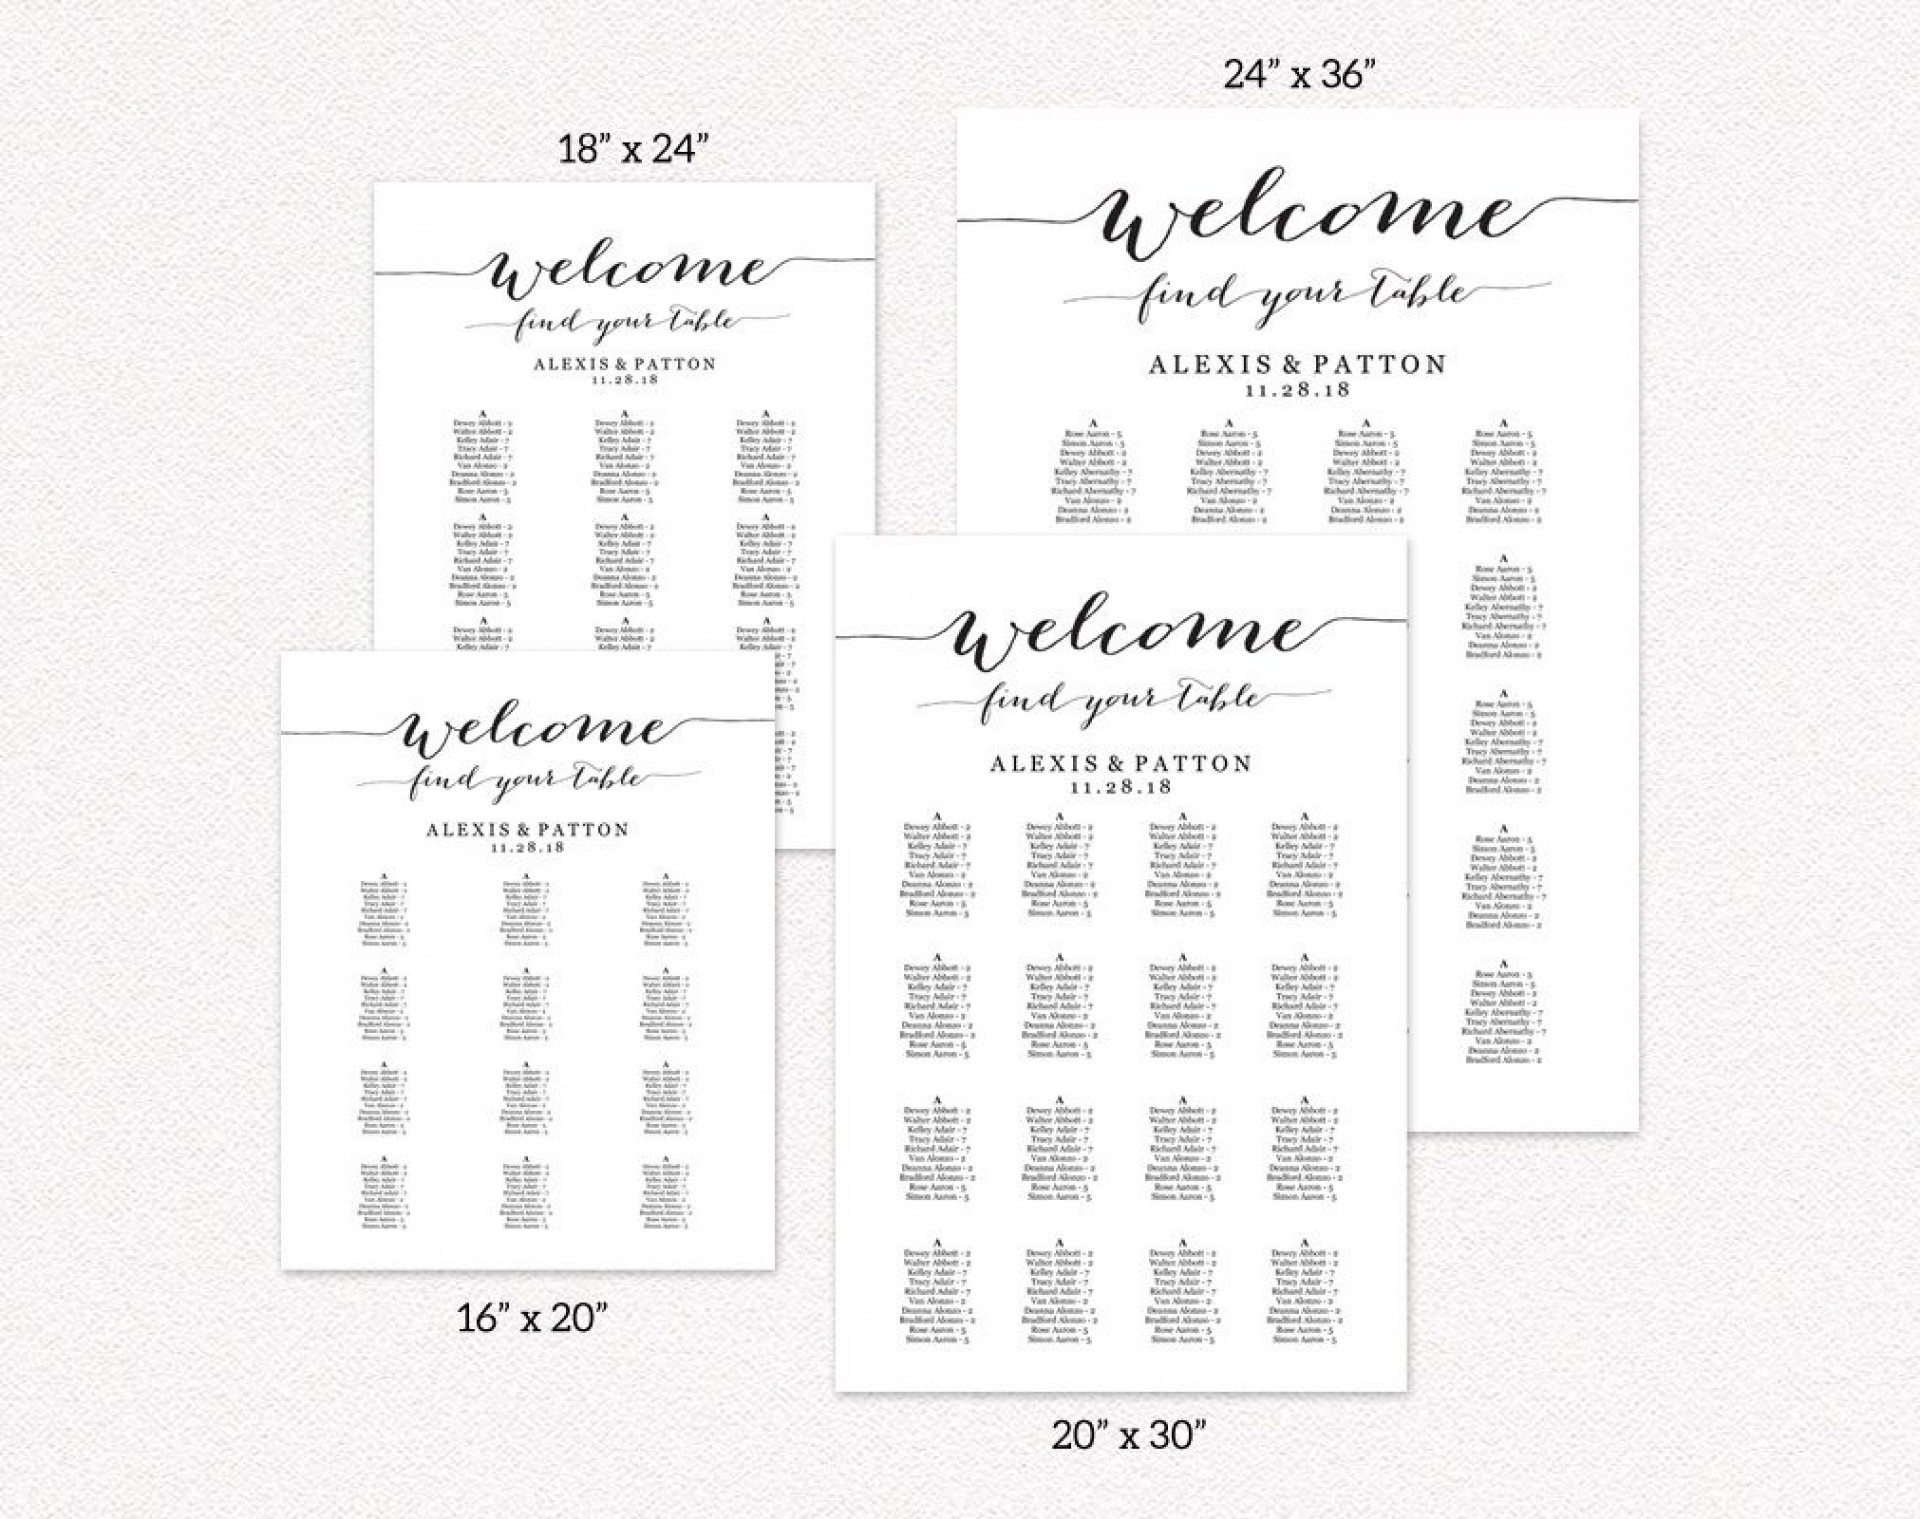 003 Archaicawful Wedding Seating Chart Template Highest Quality  Templates Plan Excel Word Microsoft1920